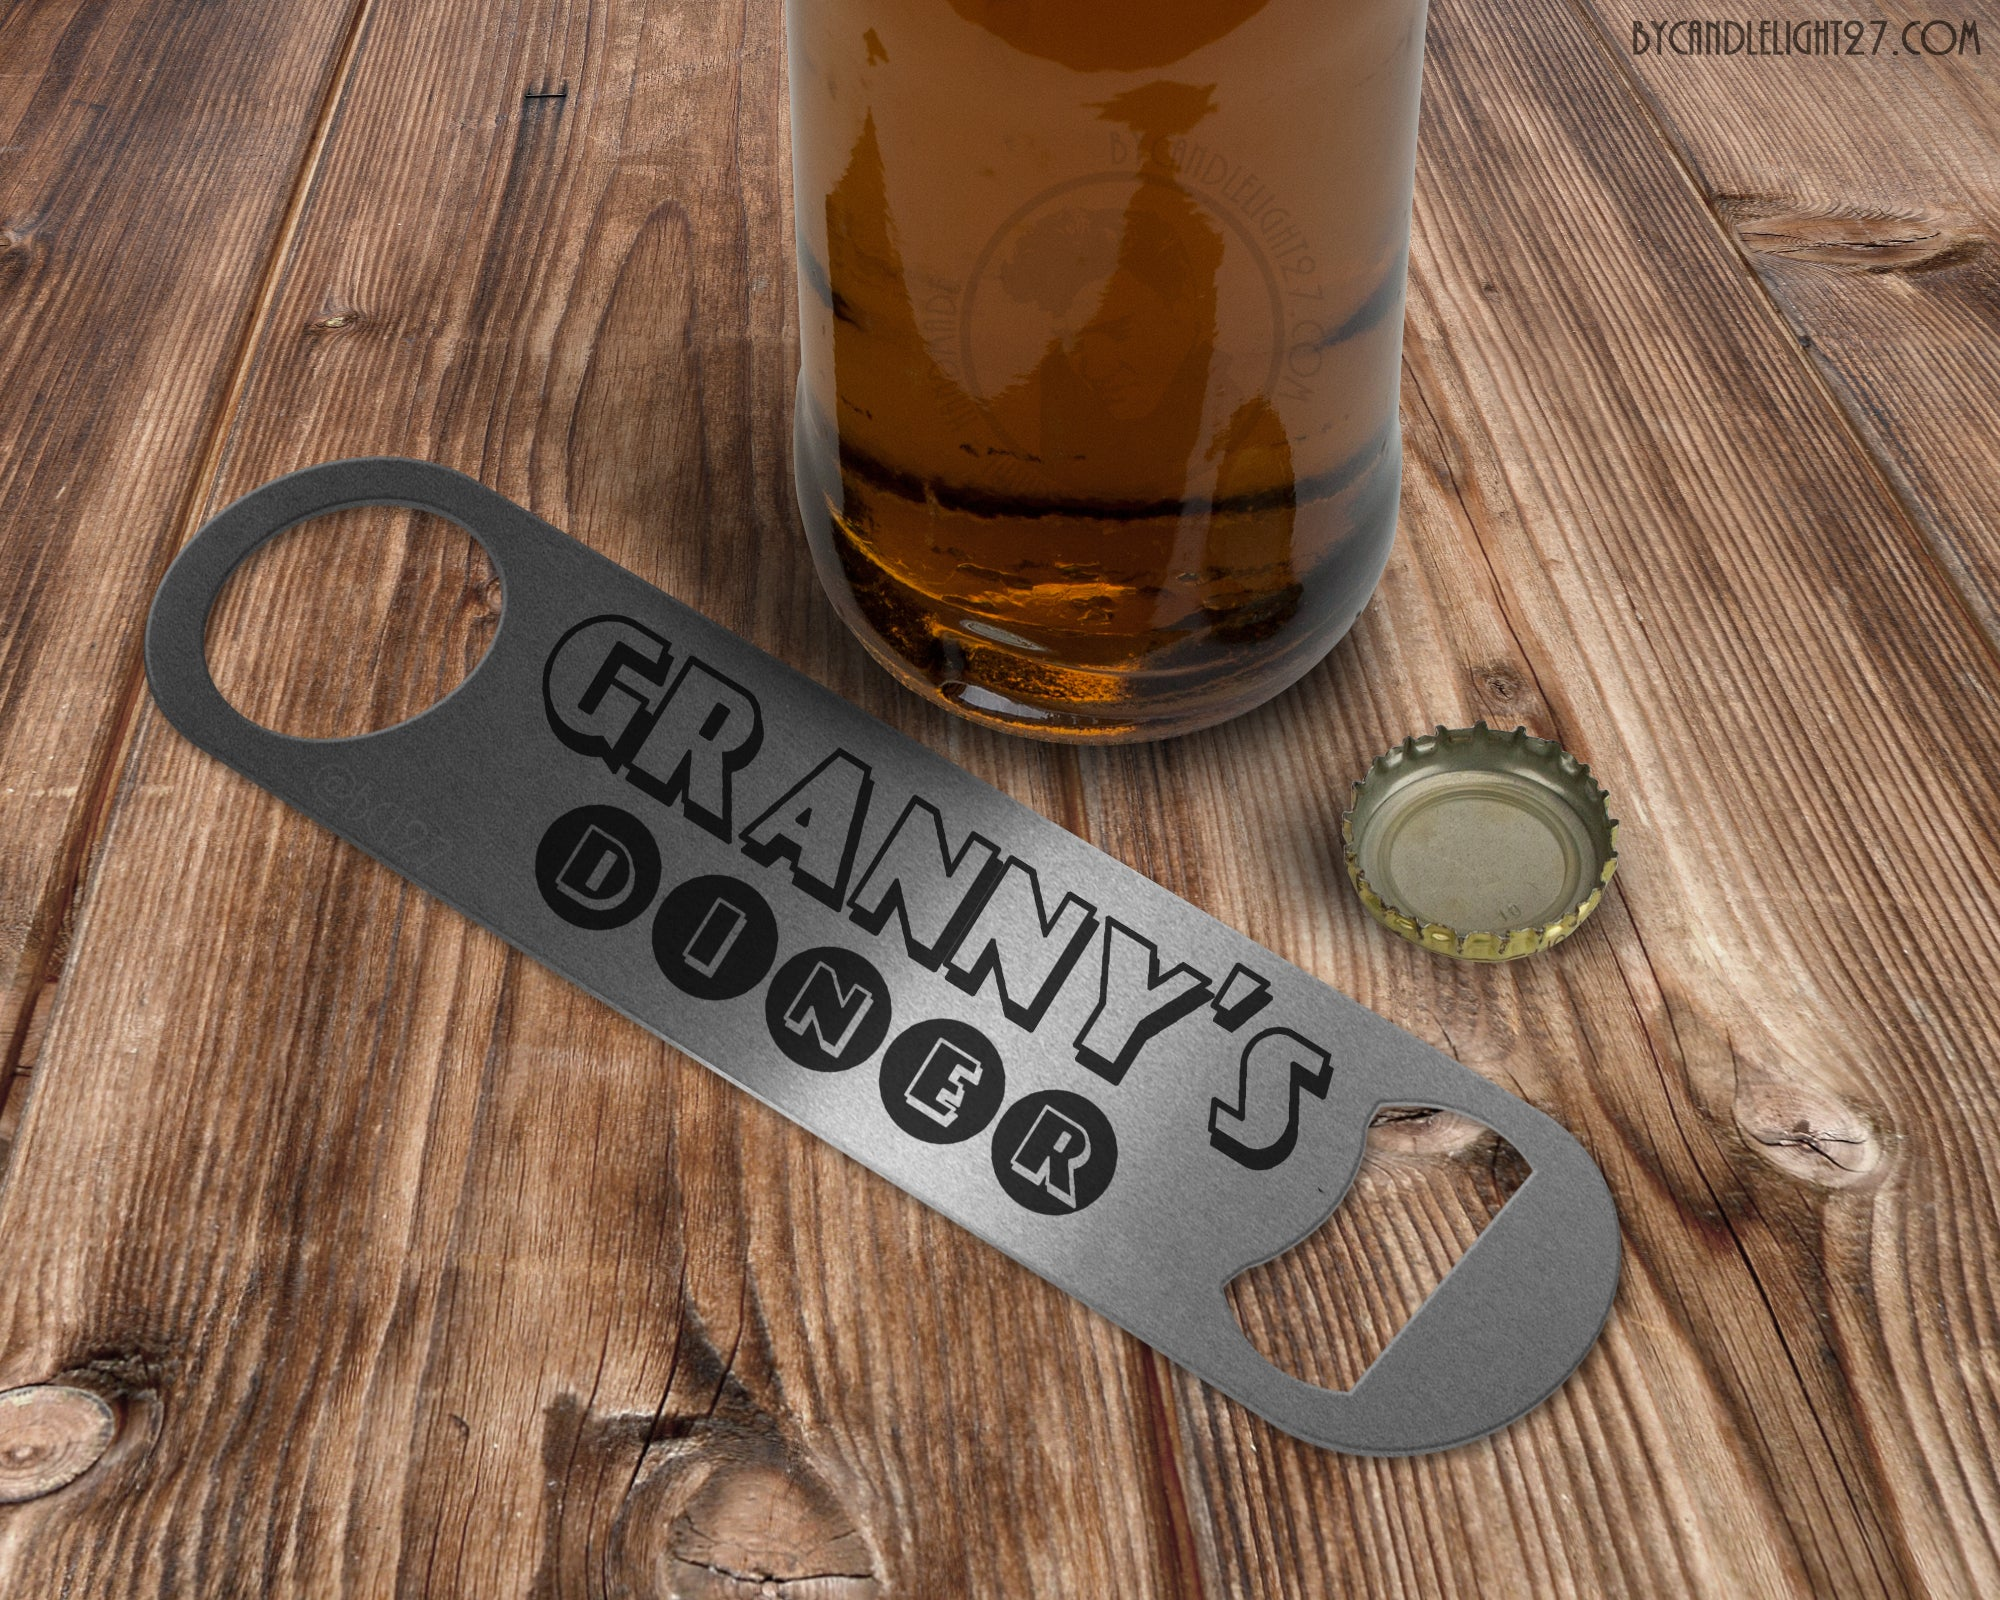 Granny's Diner Bar Blade Bottle Opener - ByCandlelight27